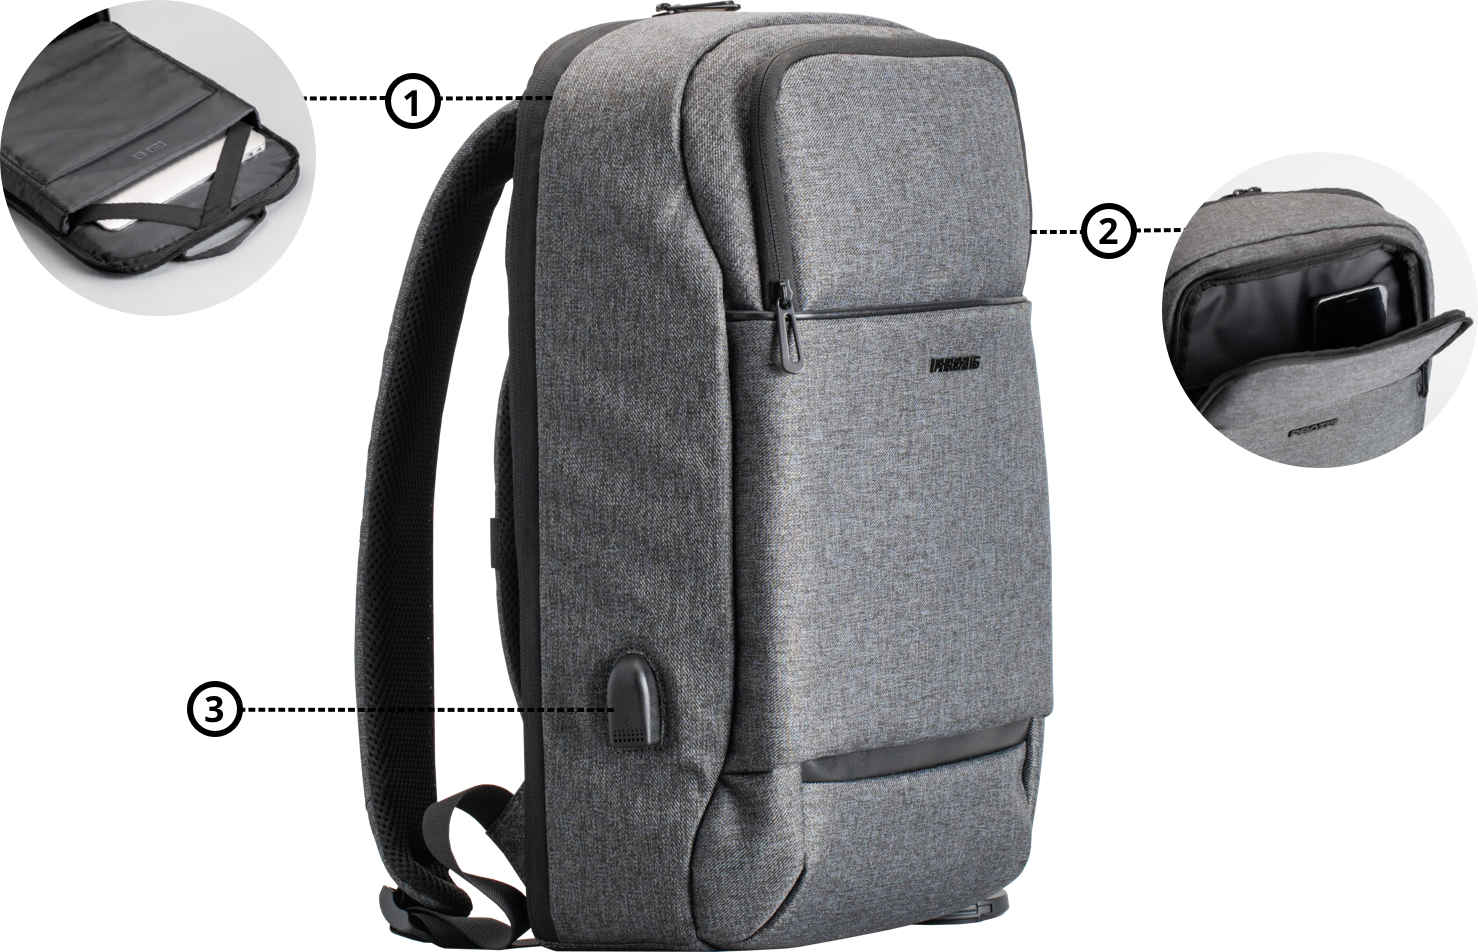 The Capsule Backpack